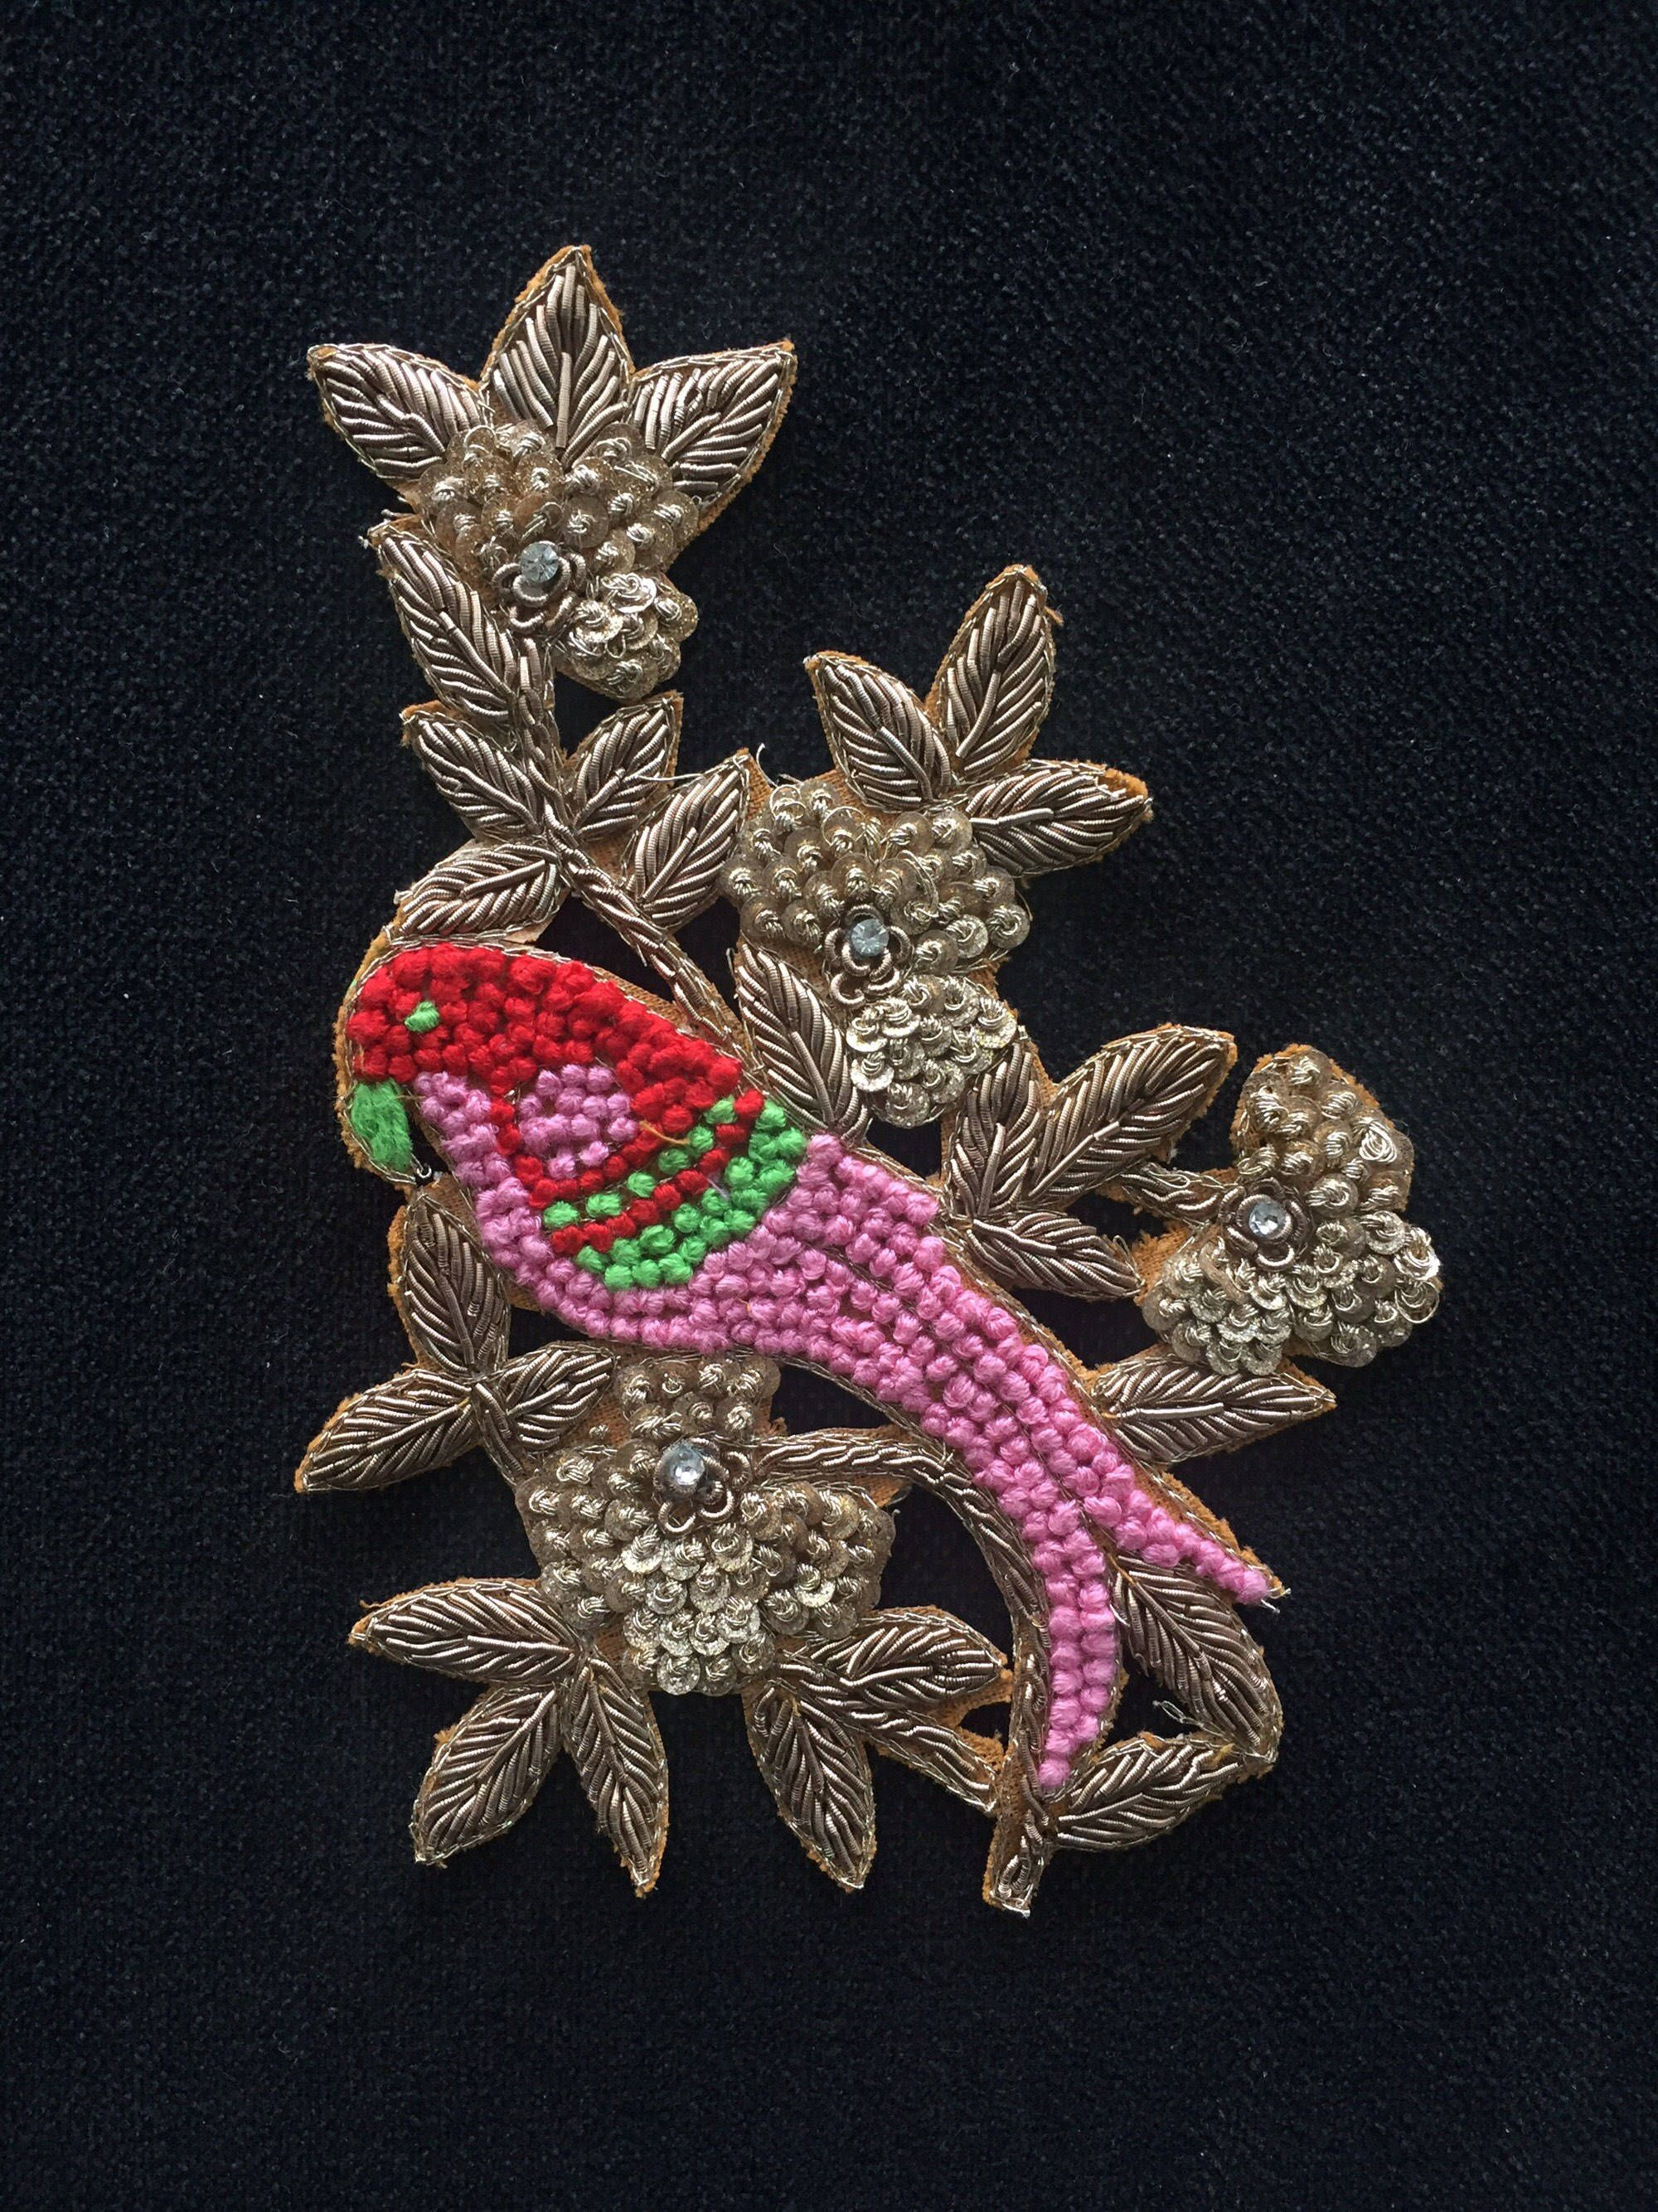 Golden Line Peacock Embroidery Patch Hand Sewing On Pattches Applique DIY Craft